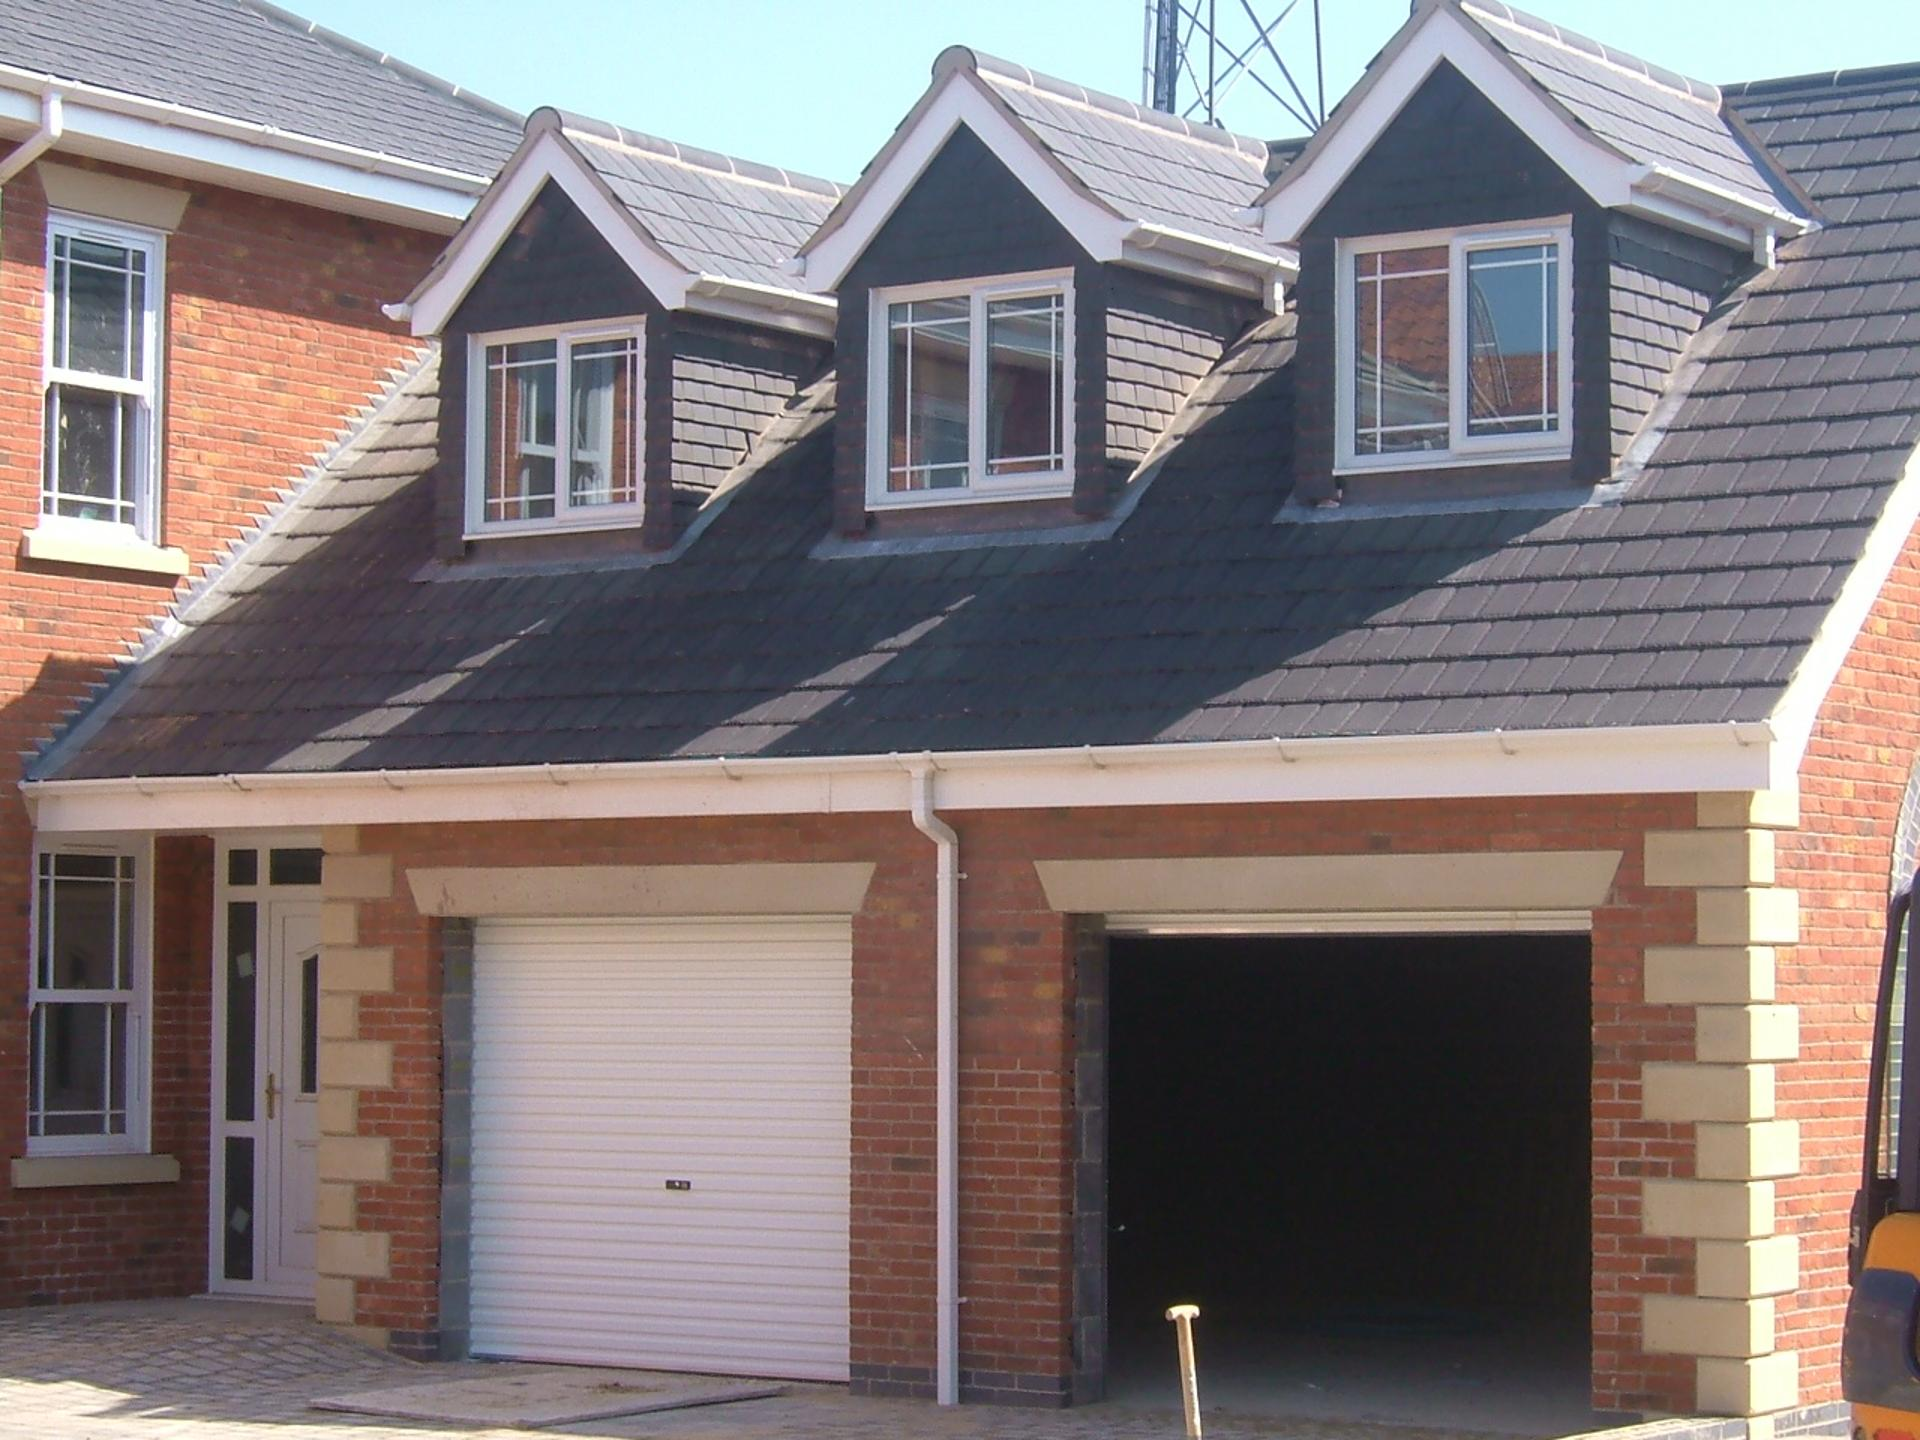 Garage Roof Fascias Amp Refurbished Garage With New Roof And